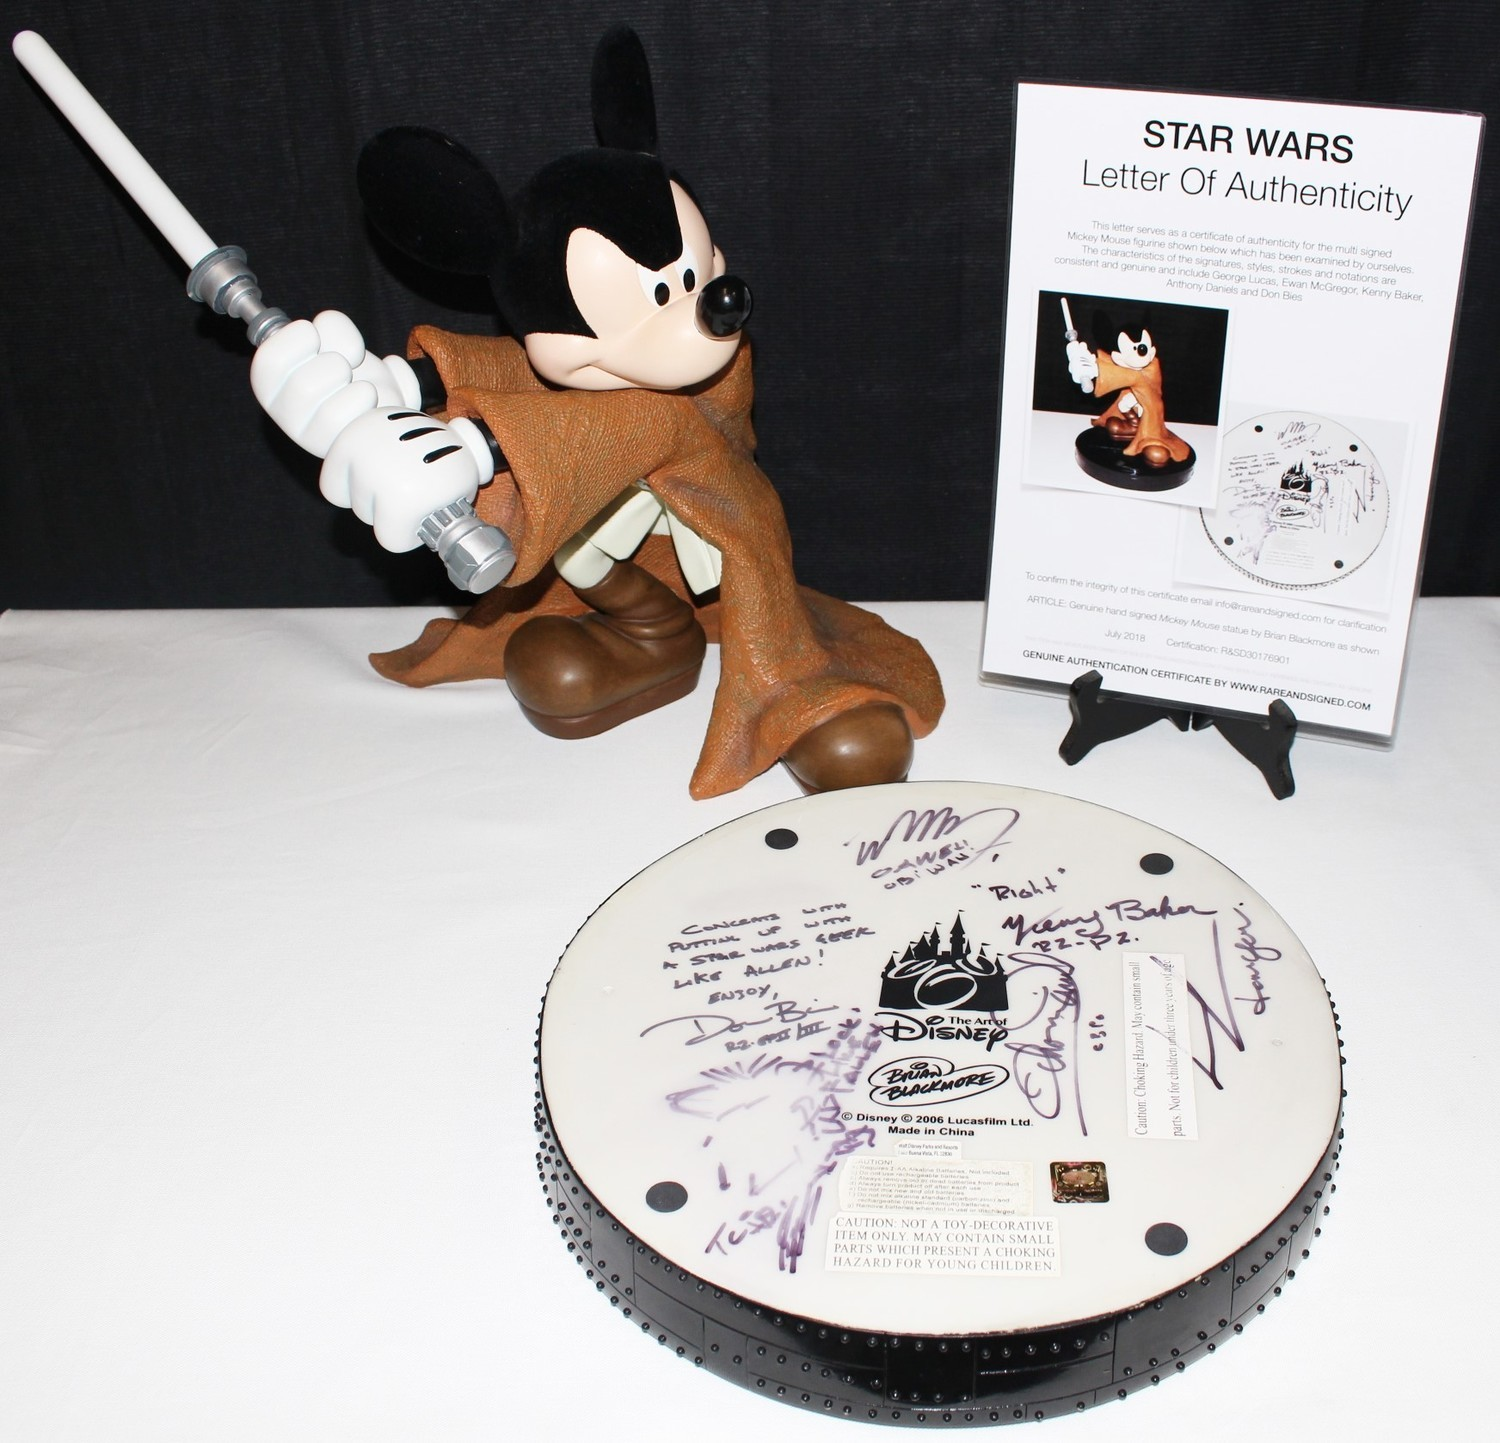 Mickey Mouse Jedi Knight Fig Statue SIGNED by Star Wars Cast Members